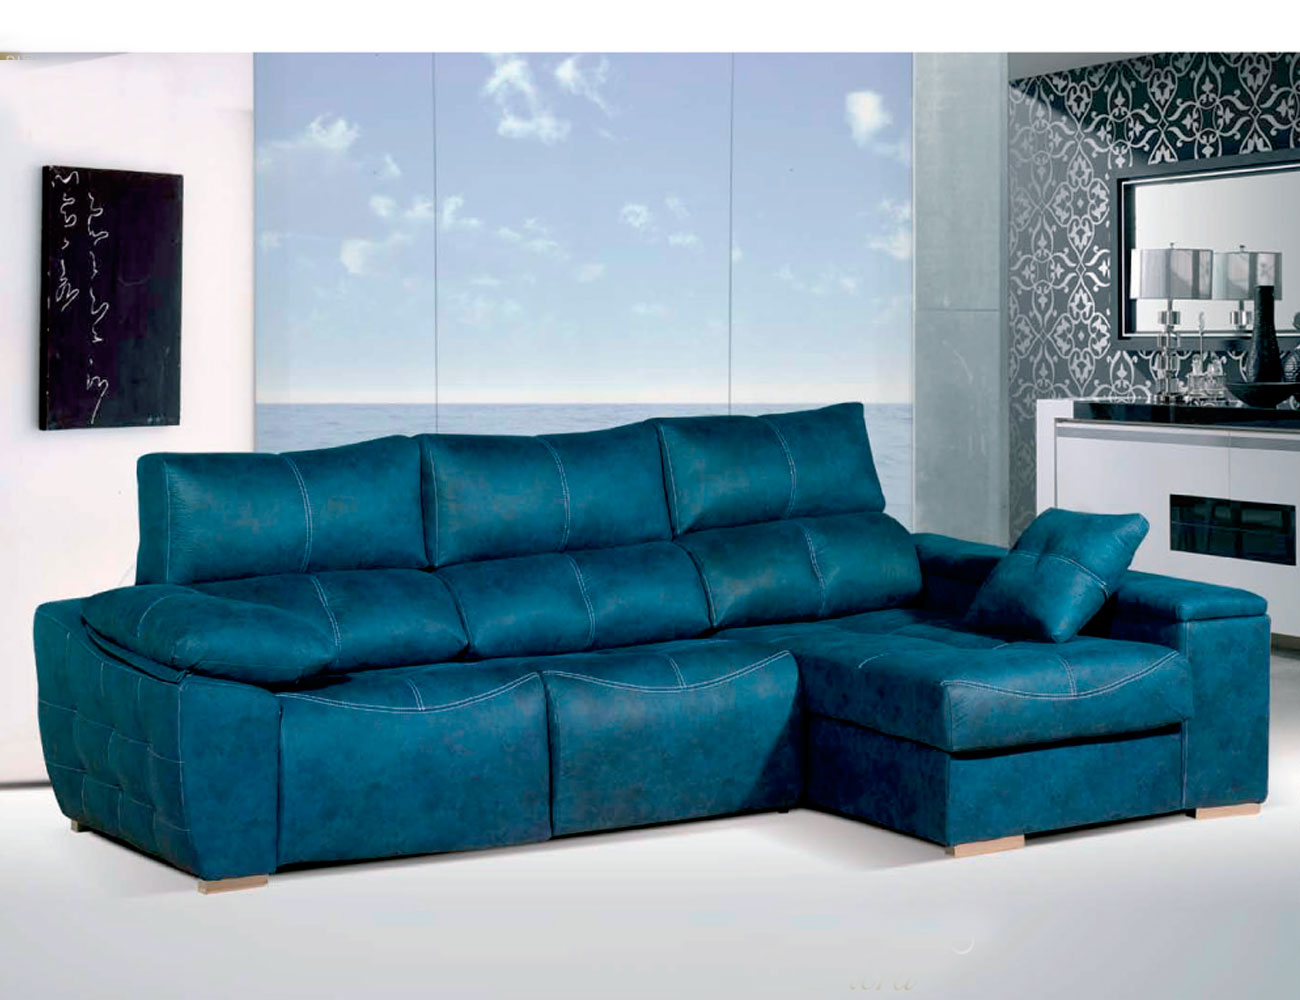 Sofa chaiselongue relax 2 motores anti manchas turquesa36